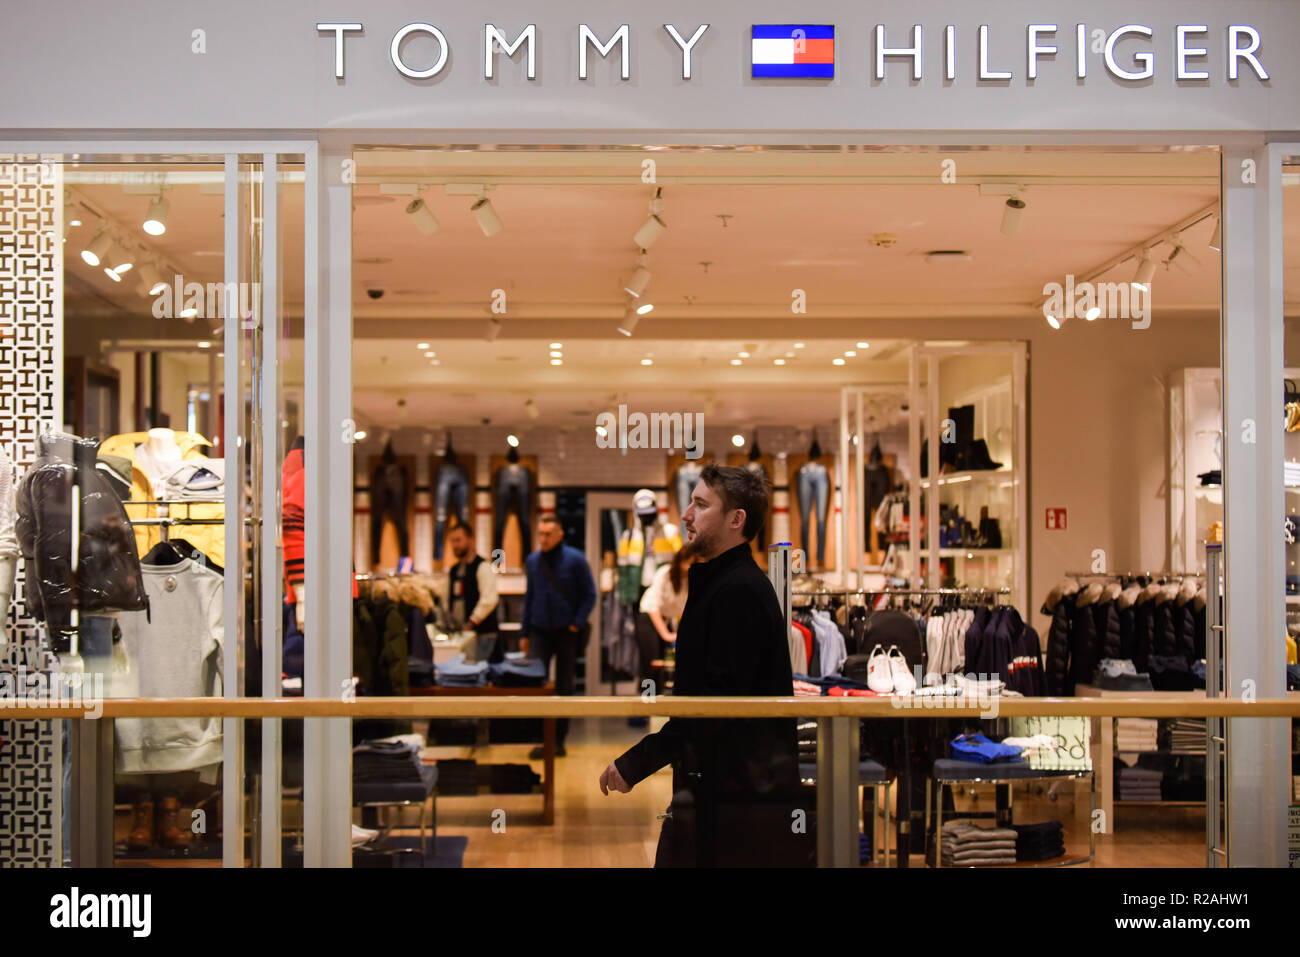 298f3388 Tommy Hilfiger Logo Stock Photos & Tommy Hilfiger Logo Stock Images ...